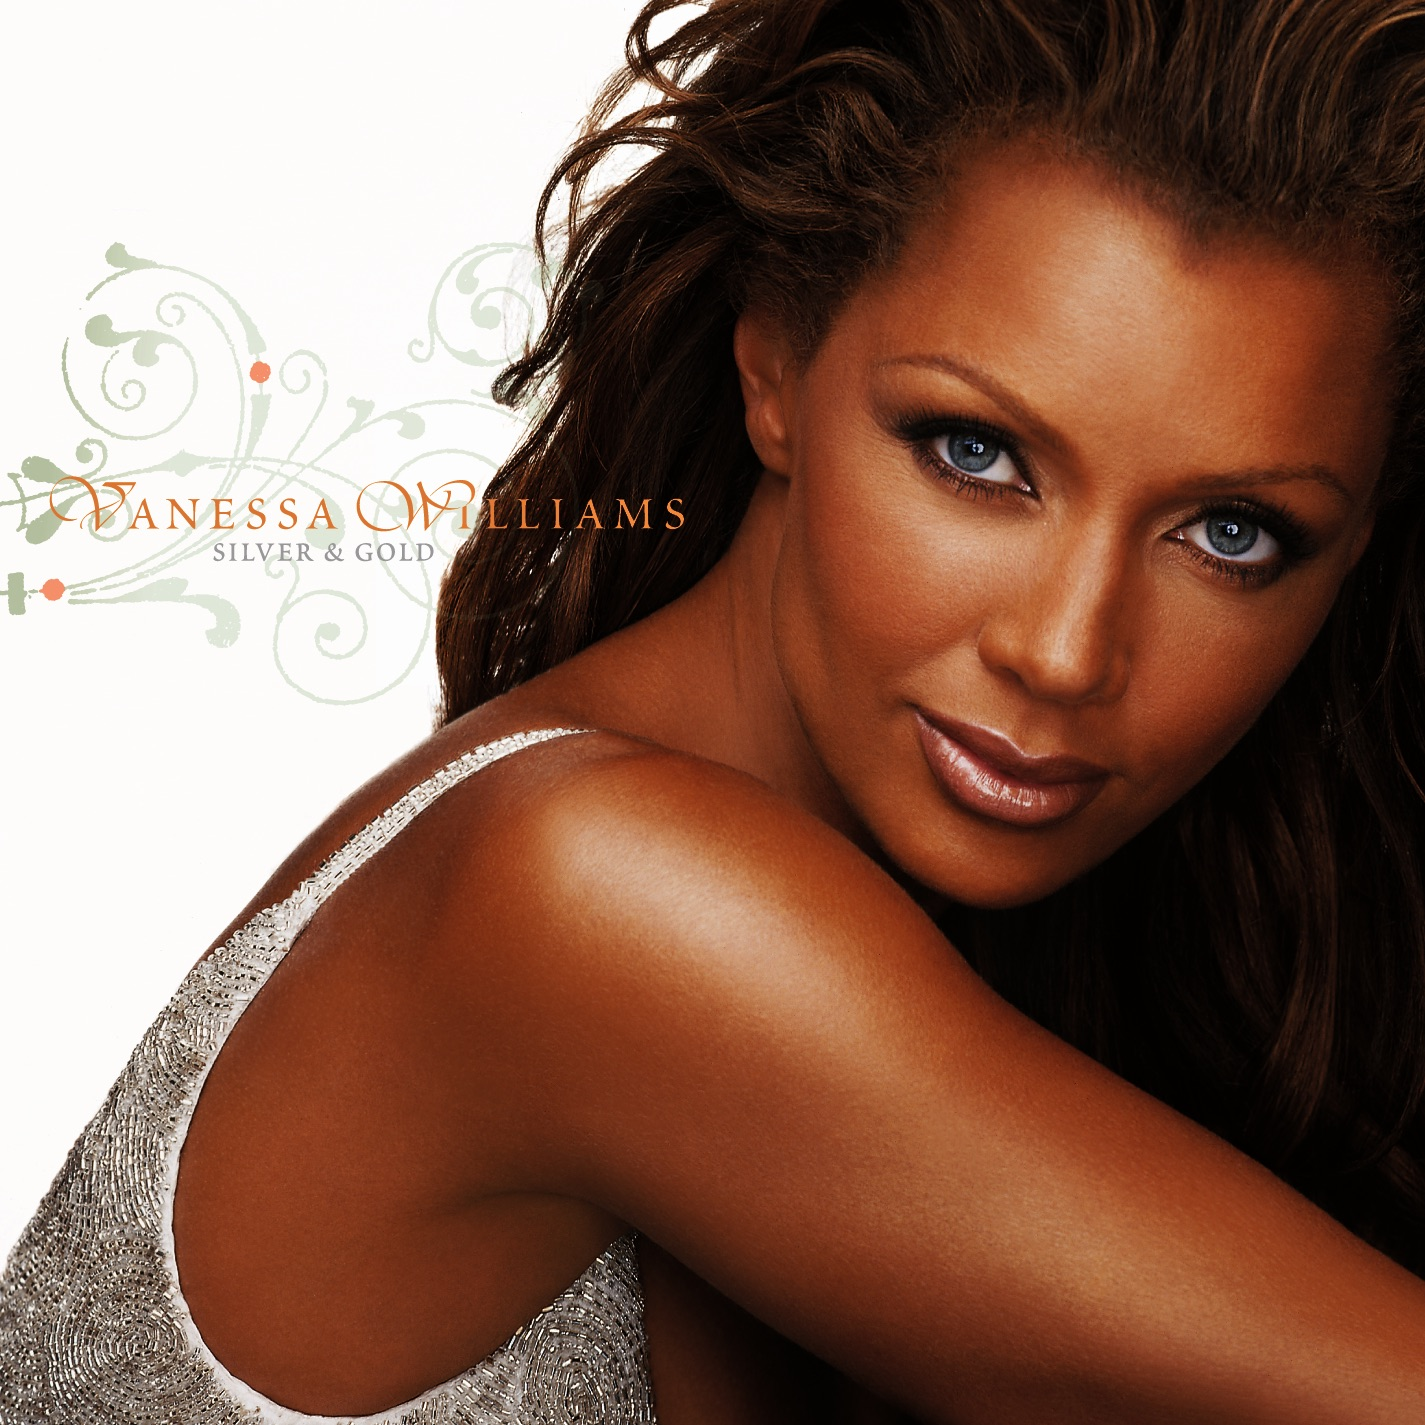 Vanessa Williams: Silver And Gold By Vanessa Williams On ITunes